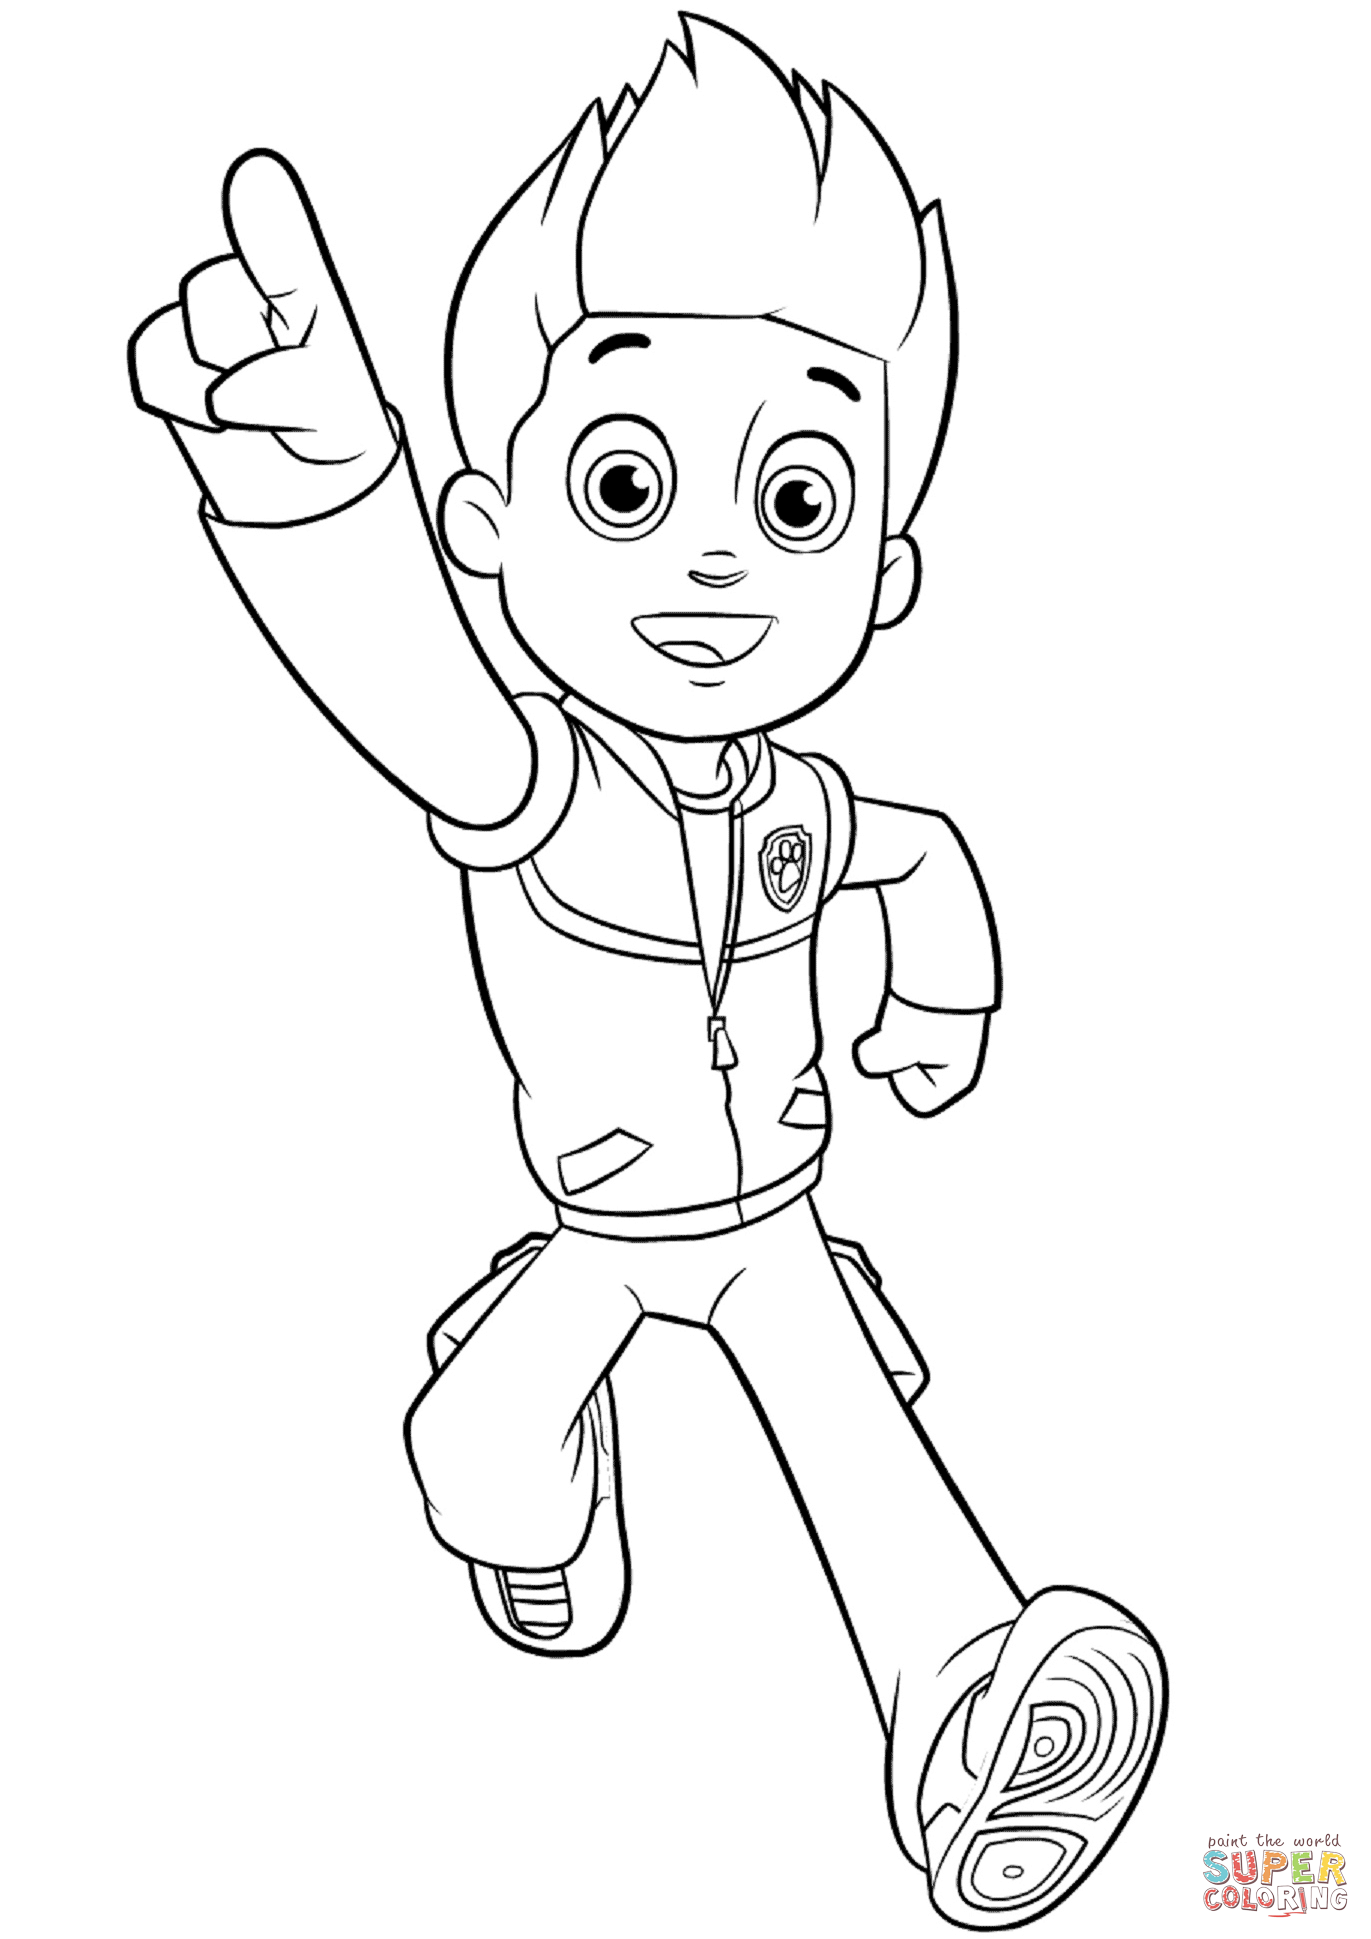 paw patrol ryder coloring paw patrol ryder sitting and happy coloring page free ryder patrol paw coloring